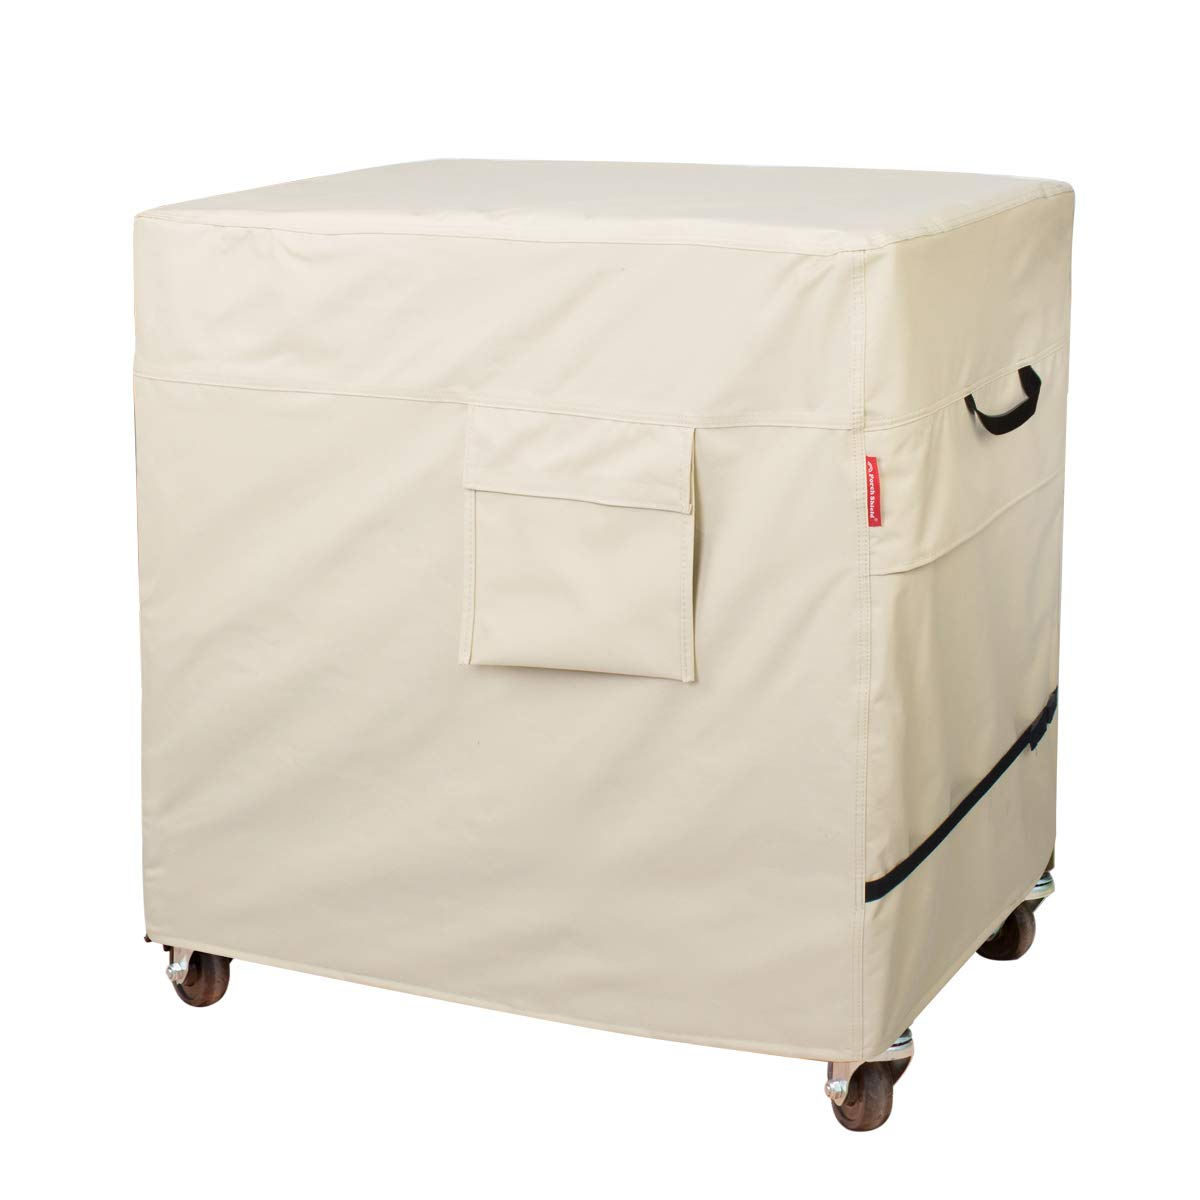 Porch Shield 100% Waterproof & Dust-Resistant 80-100 Qt Rolling Cooler Cart Cover Fits Most Patio Ice Chest Party Cooler Upto 43L x 22W x 32H inch